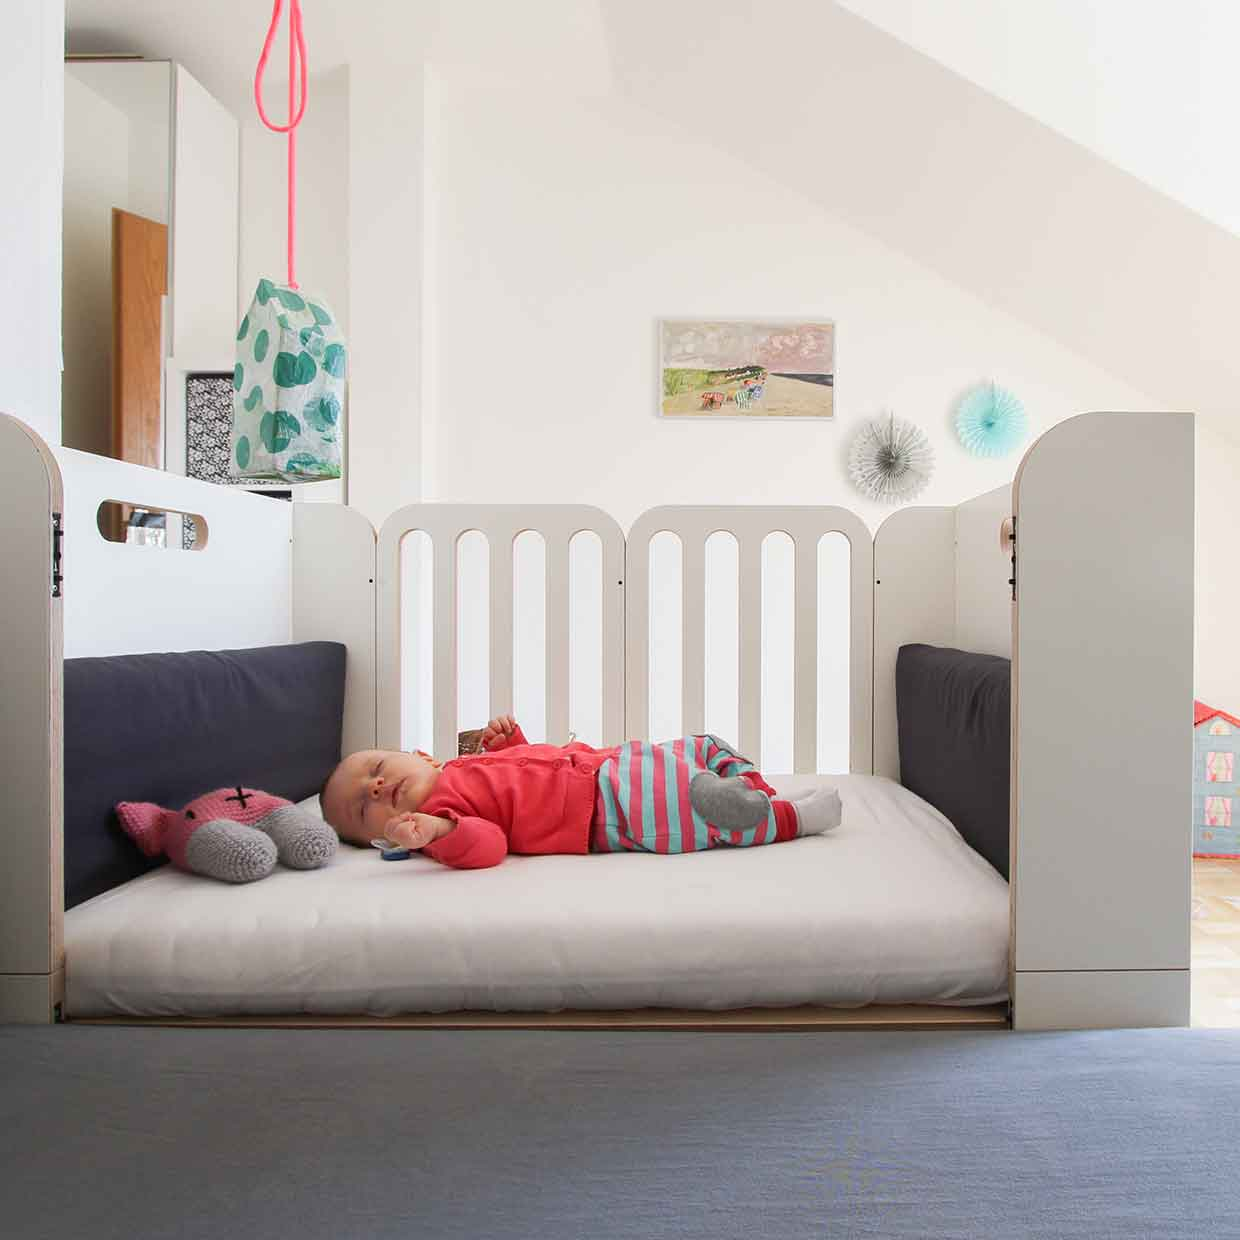 minimalmaxi growing bed by wilja afilii design for kids. Black Bedroom Furniture Sets. Home Design Ideas